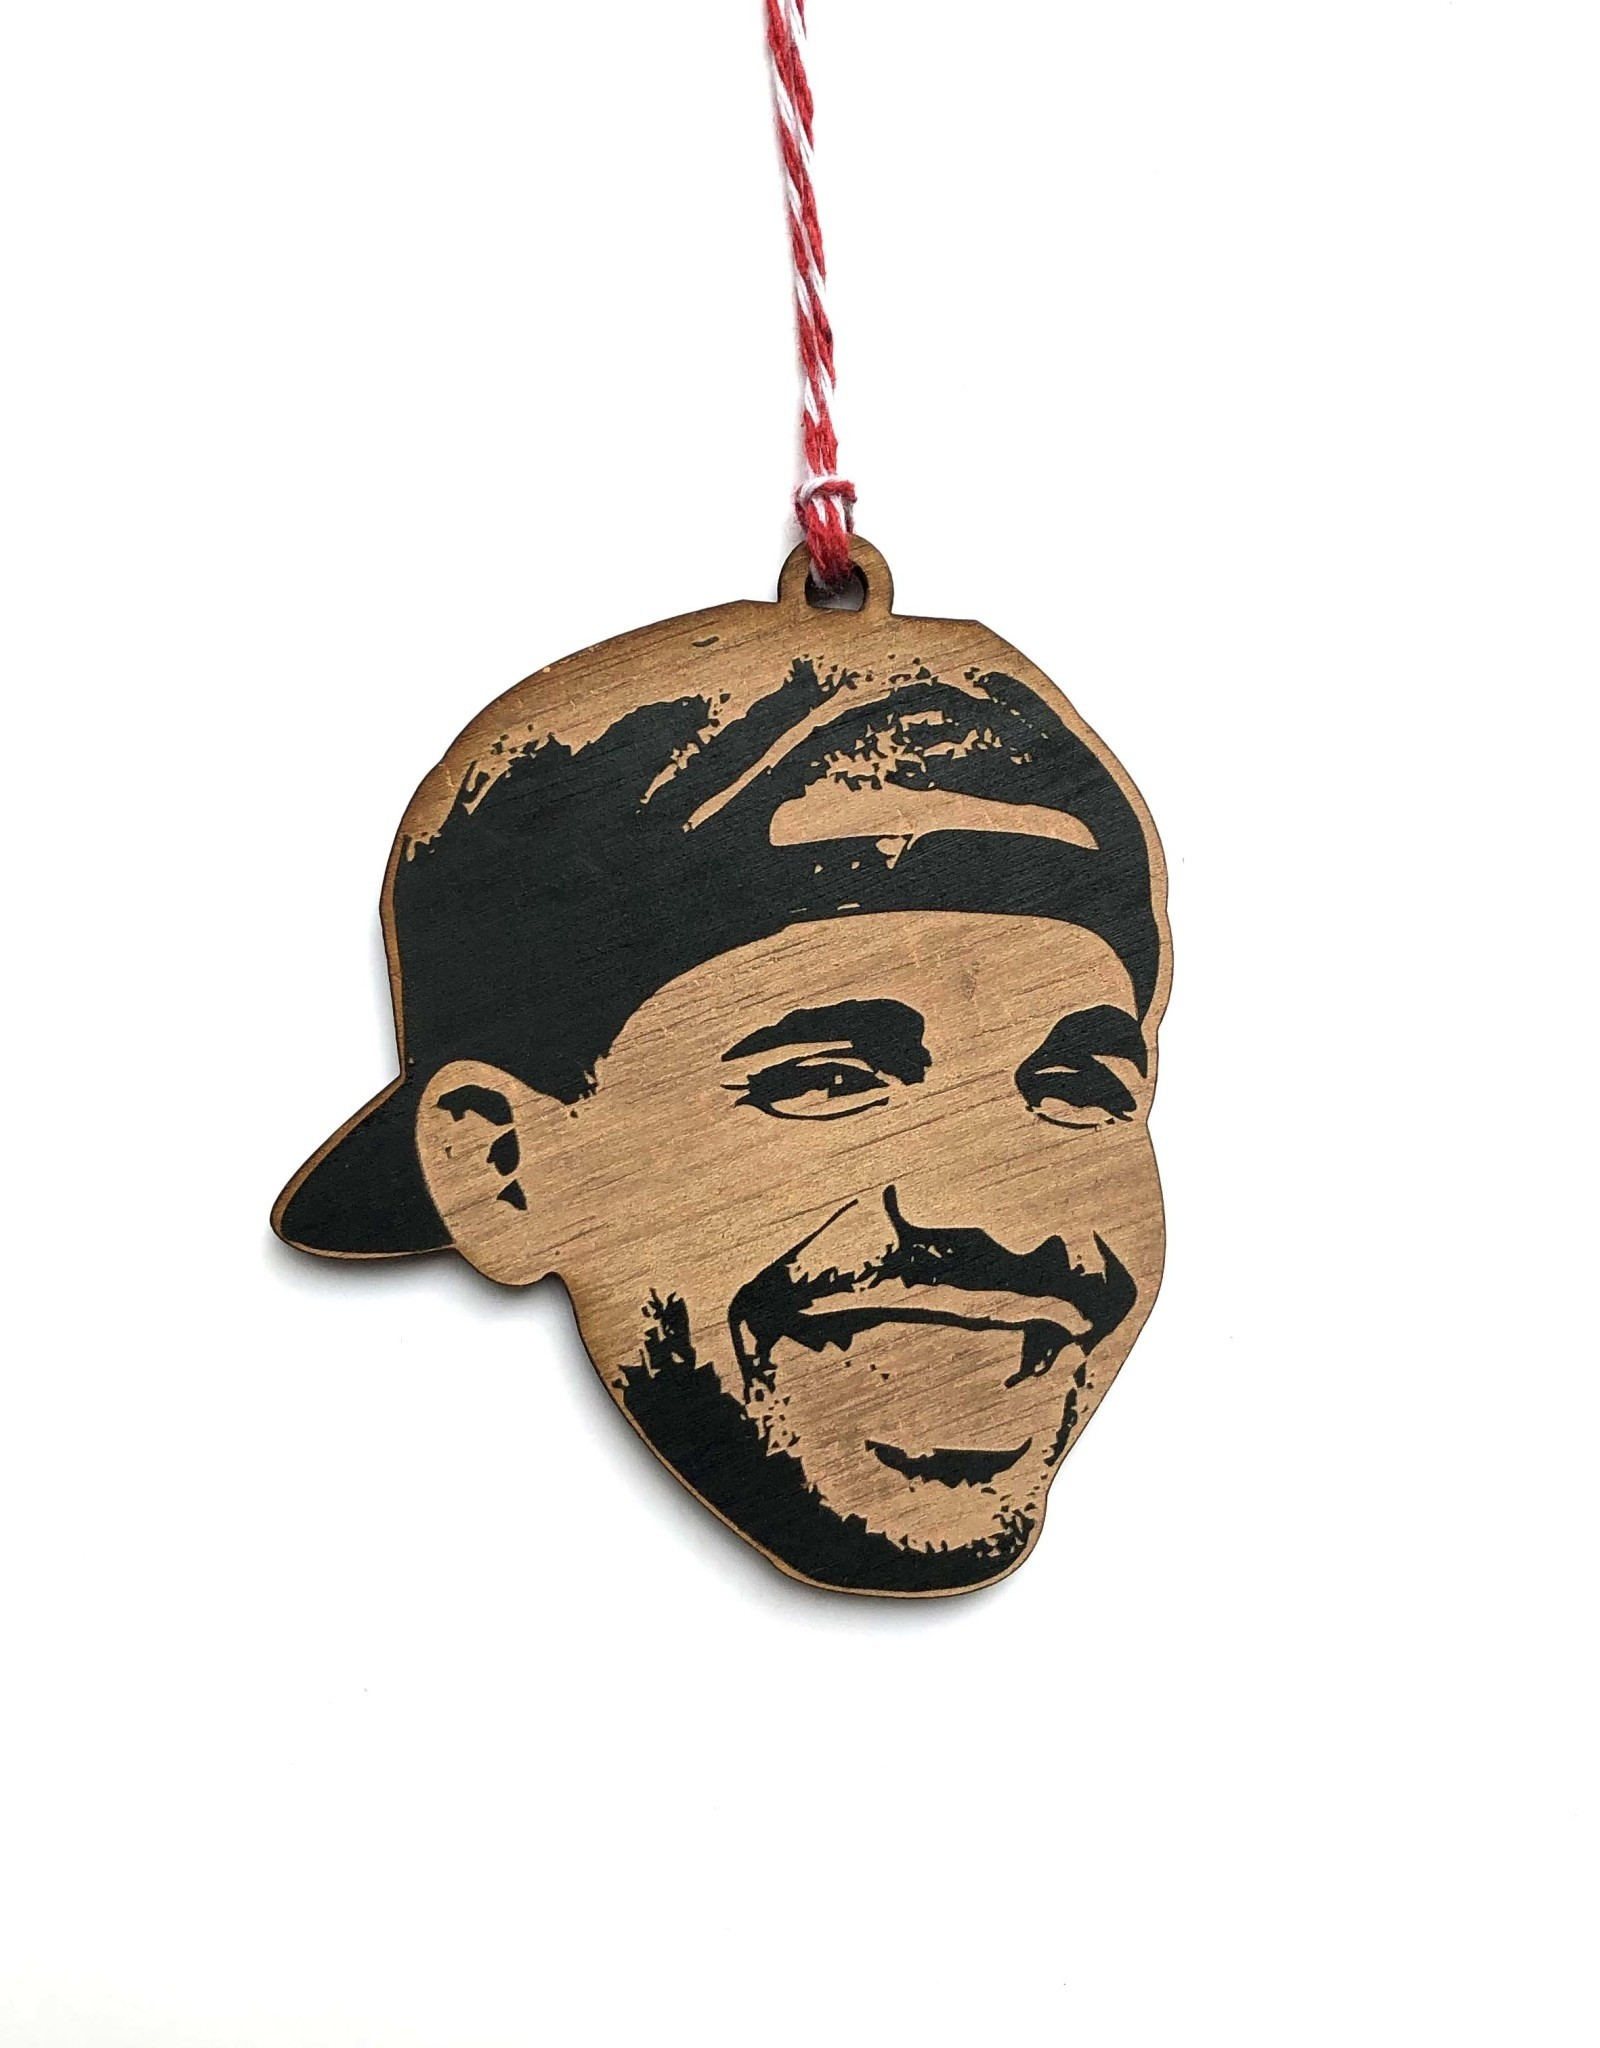 Drake Wooden Ornament